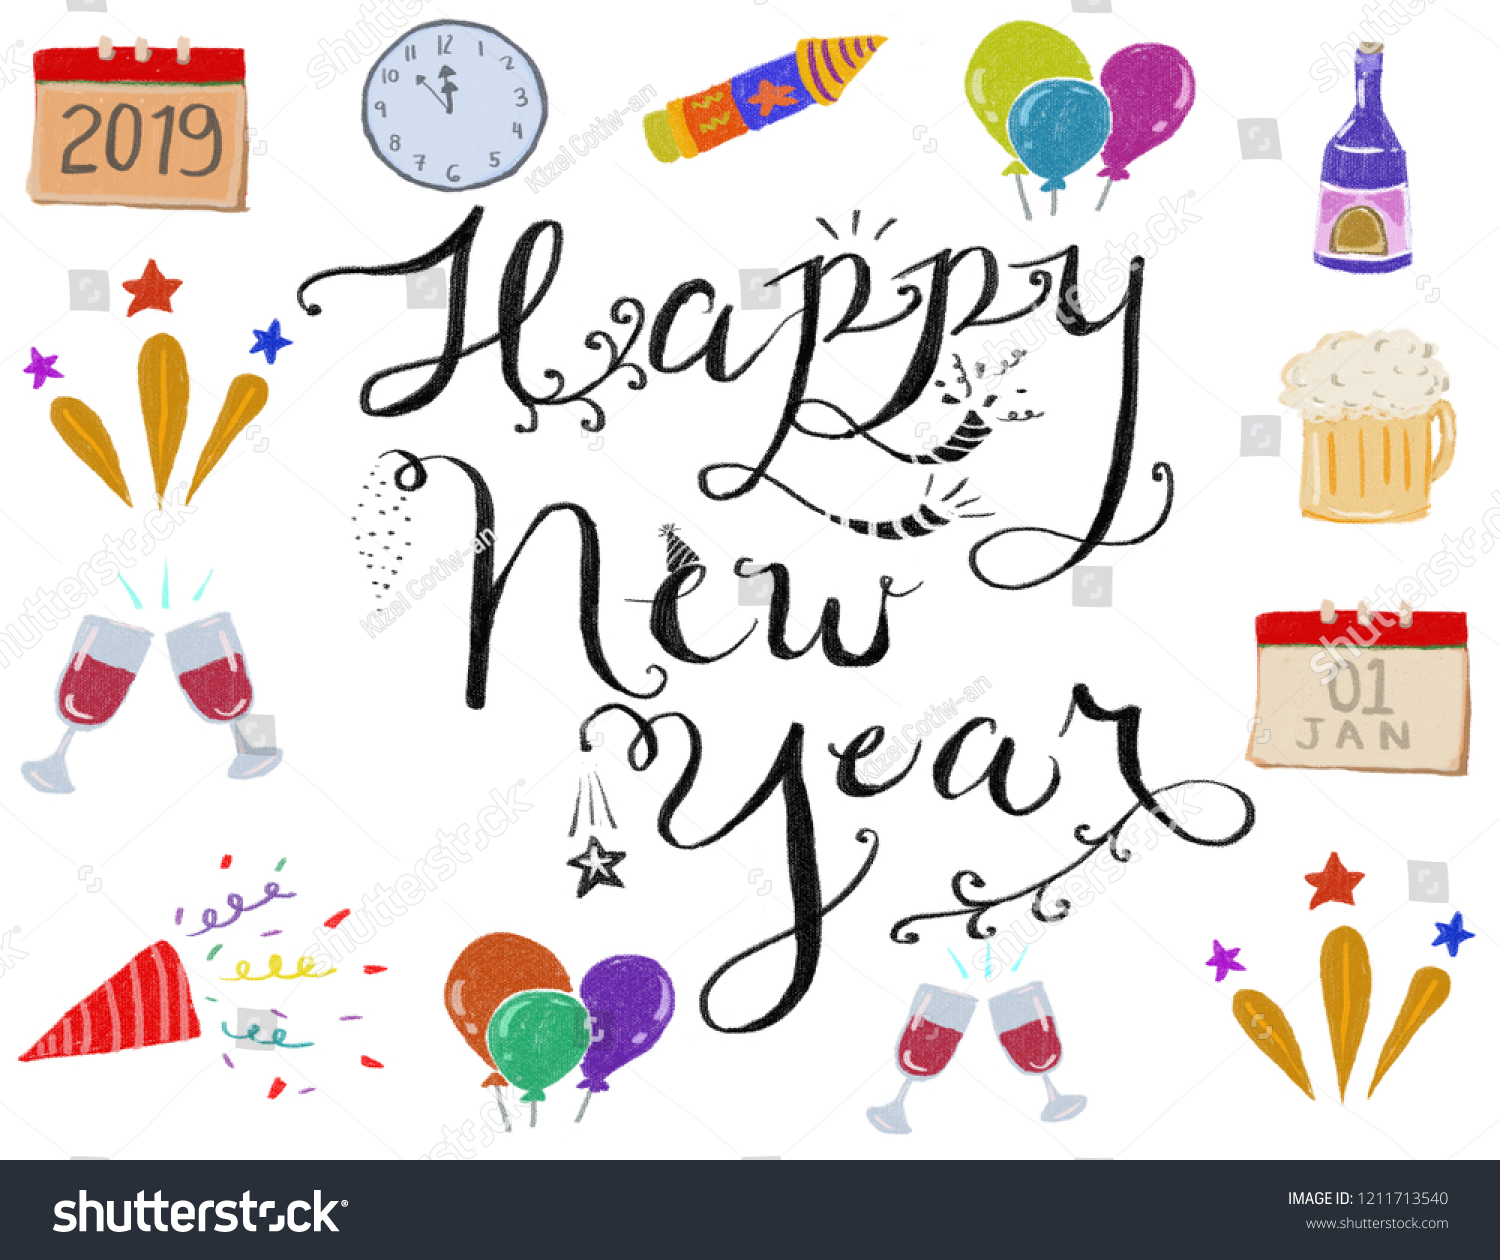 hand drawn new year icons border with happy new year in white background